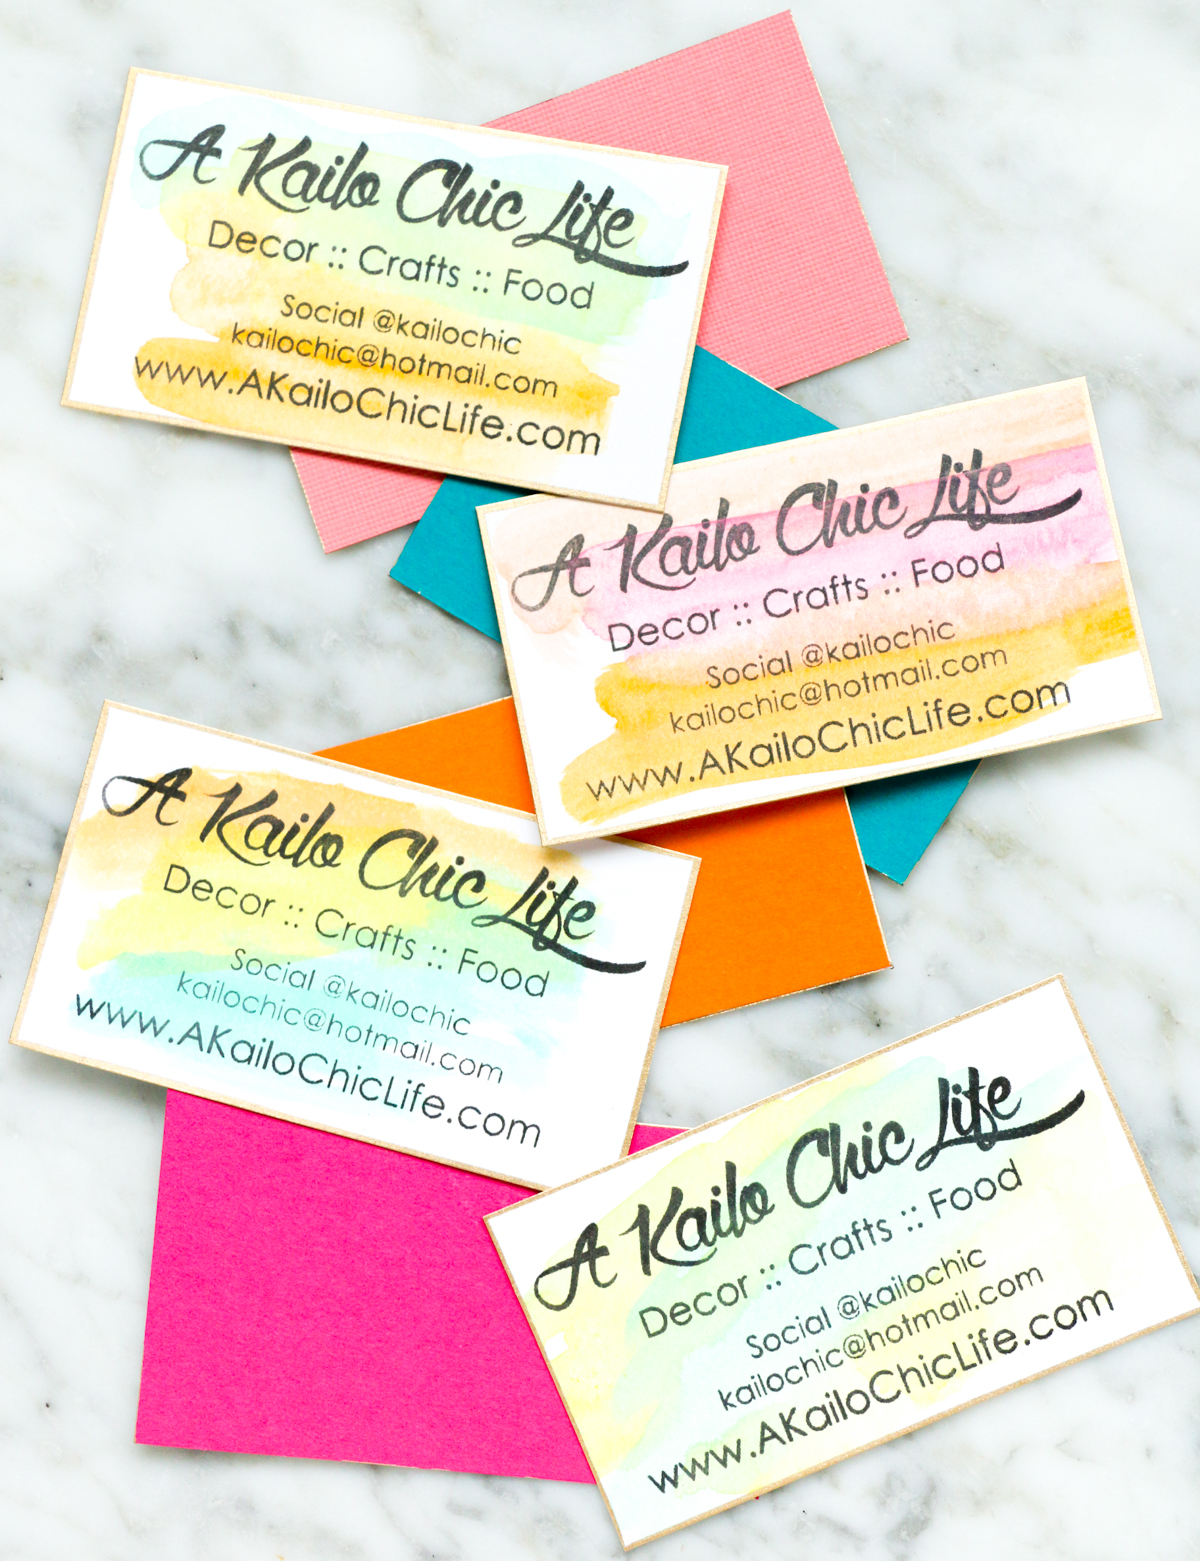 Diy it watercolor business cards a kailo chic life make your own custom business card stamp using the silhouette mint and use it to make reheart Choice Image